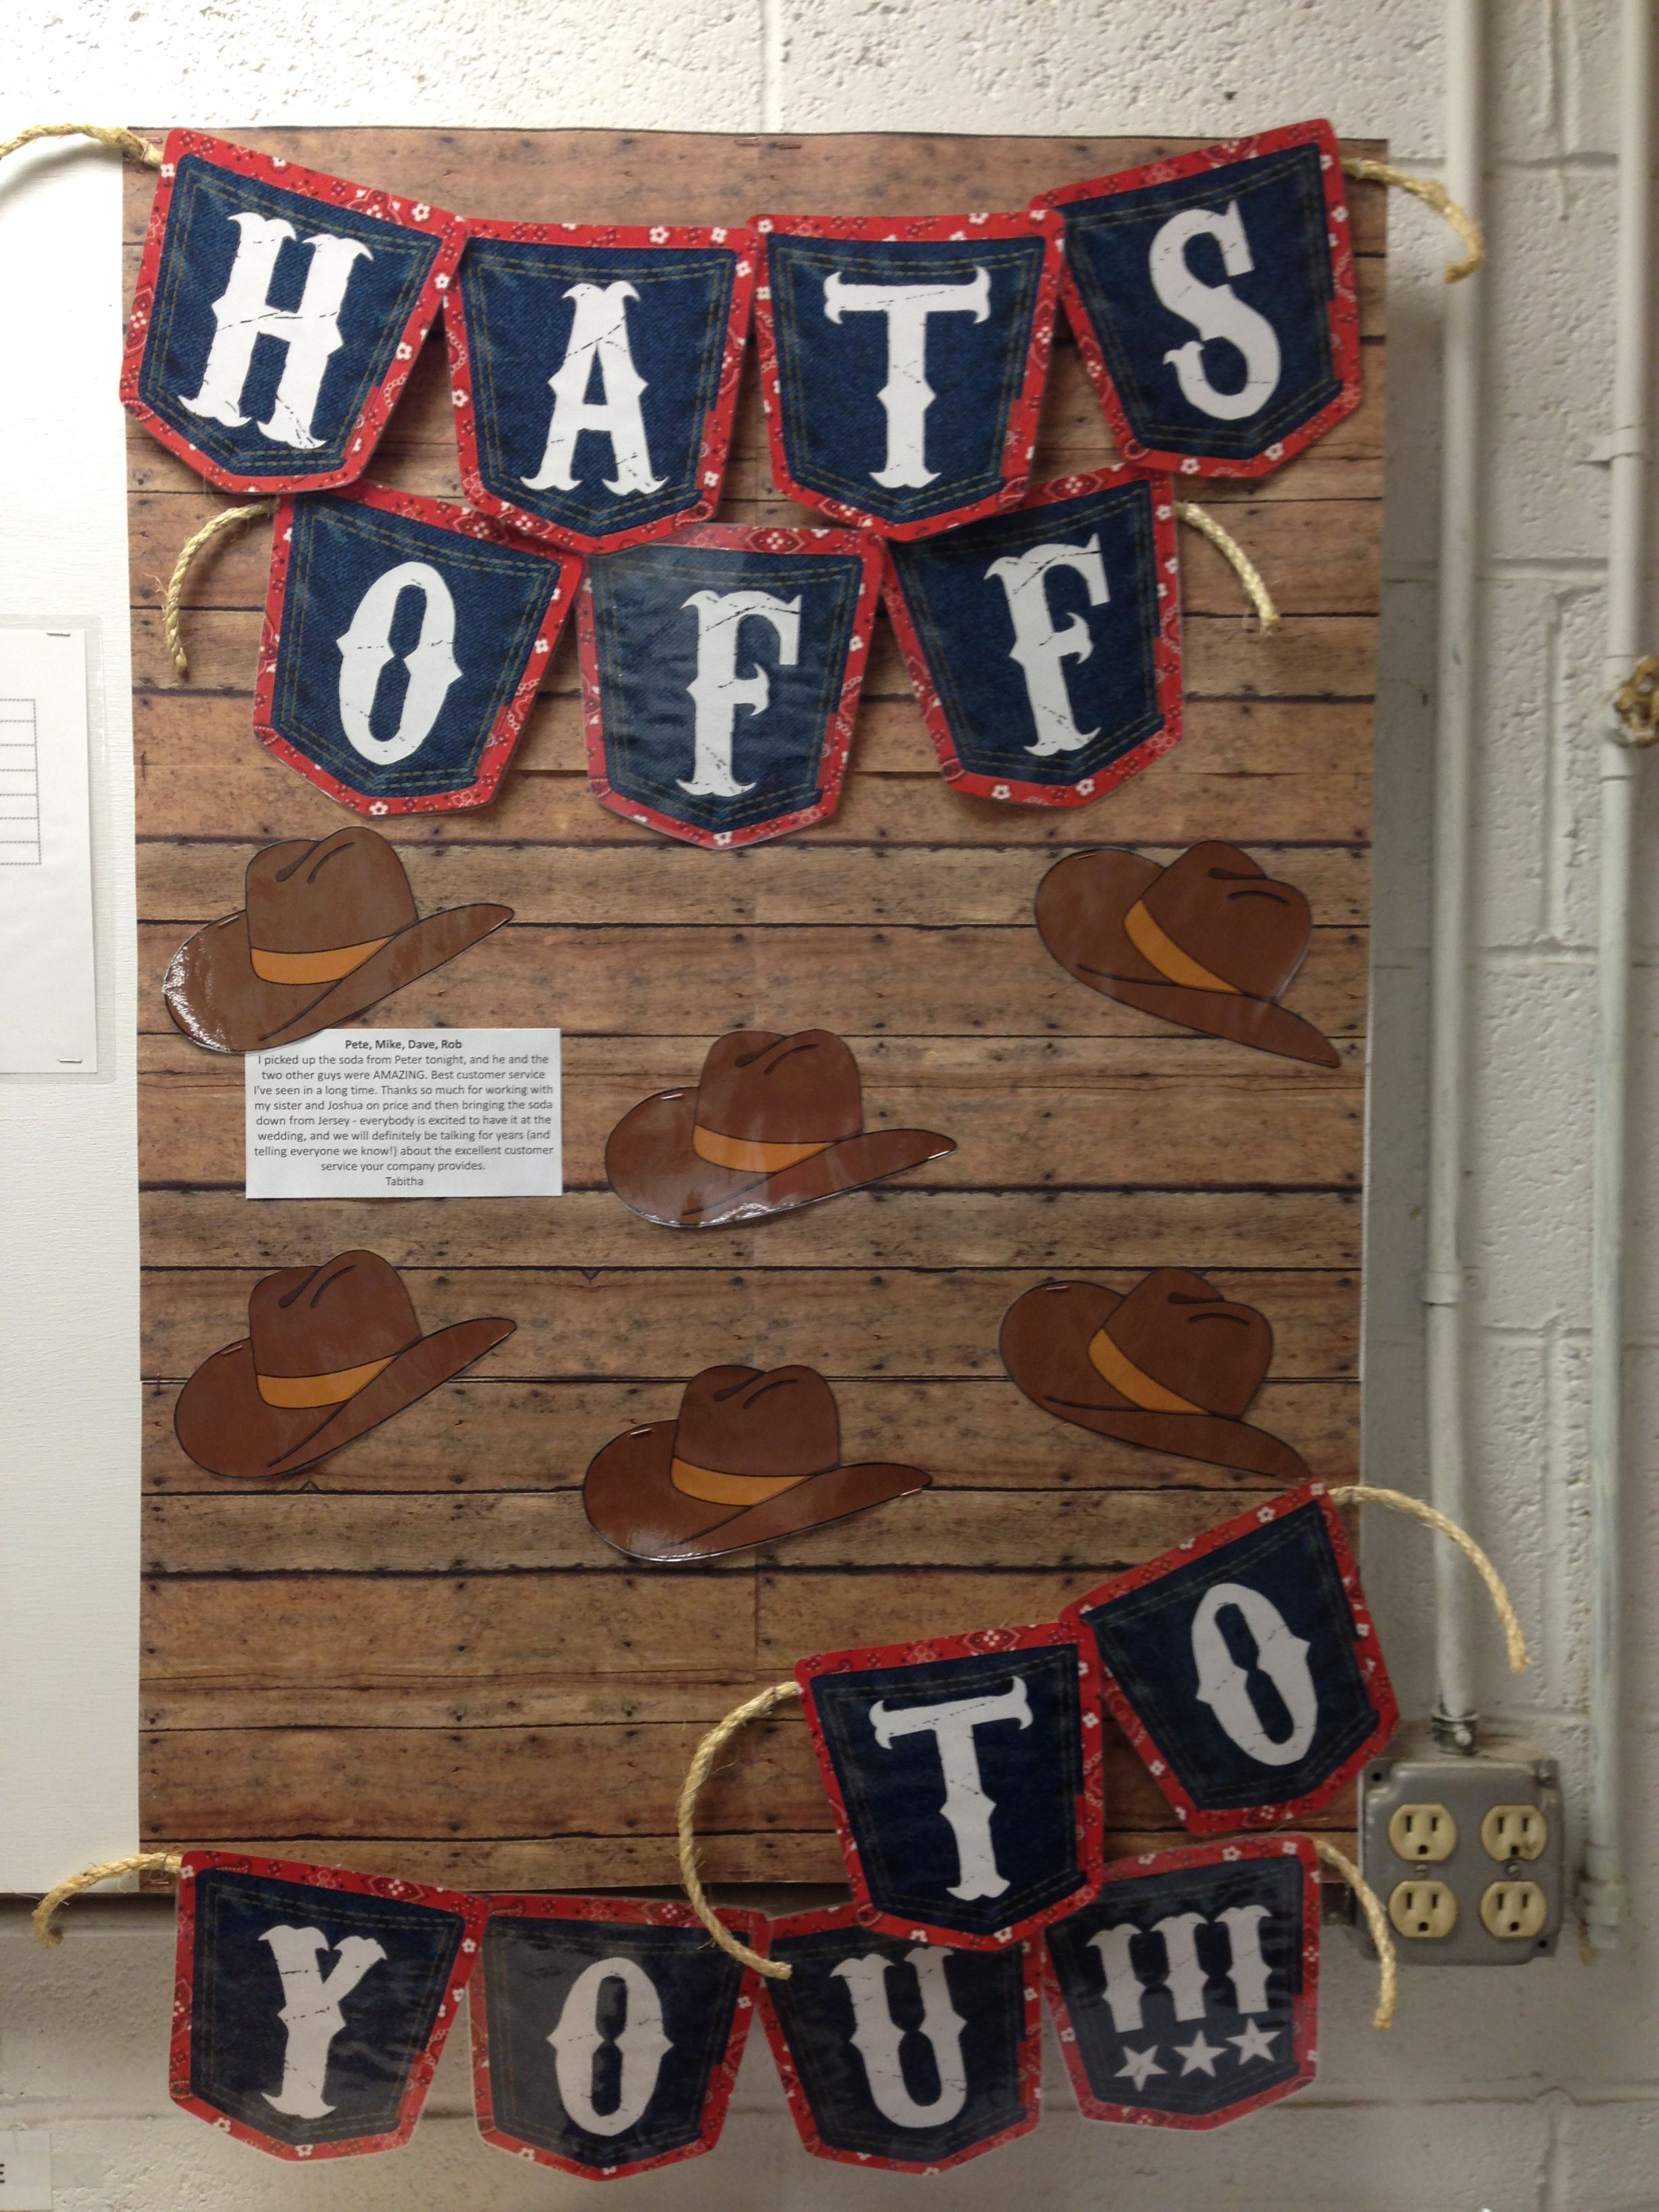 Western Cowboy Themed Recognition Board Hats Off To You